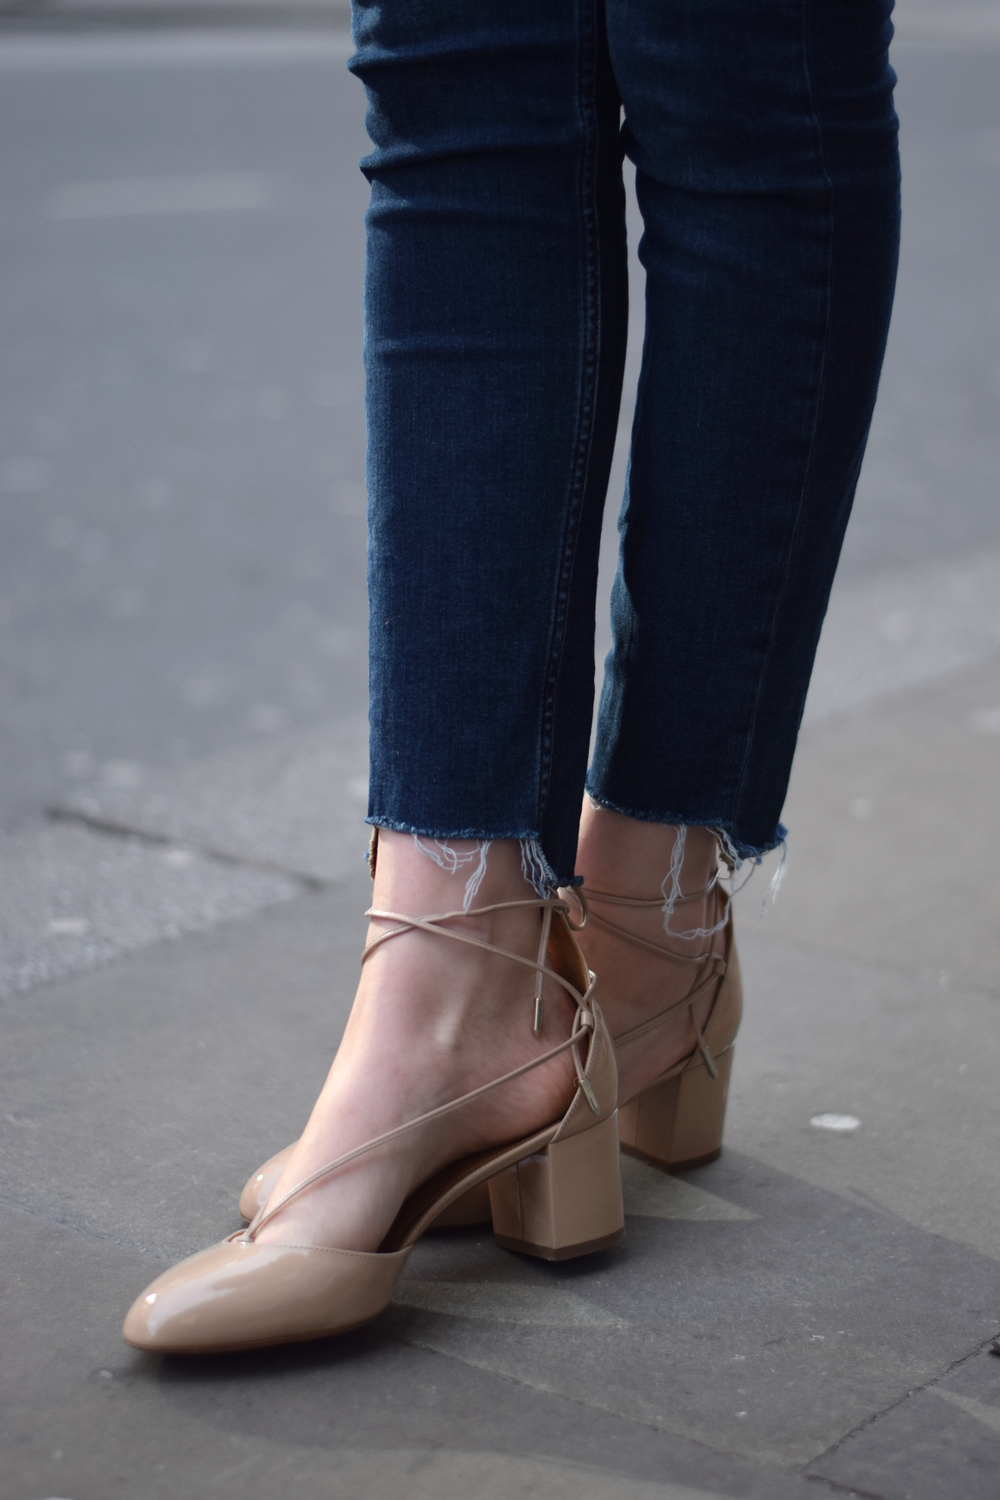 Aquazurra Alexa Nude Pumps